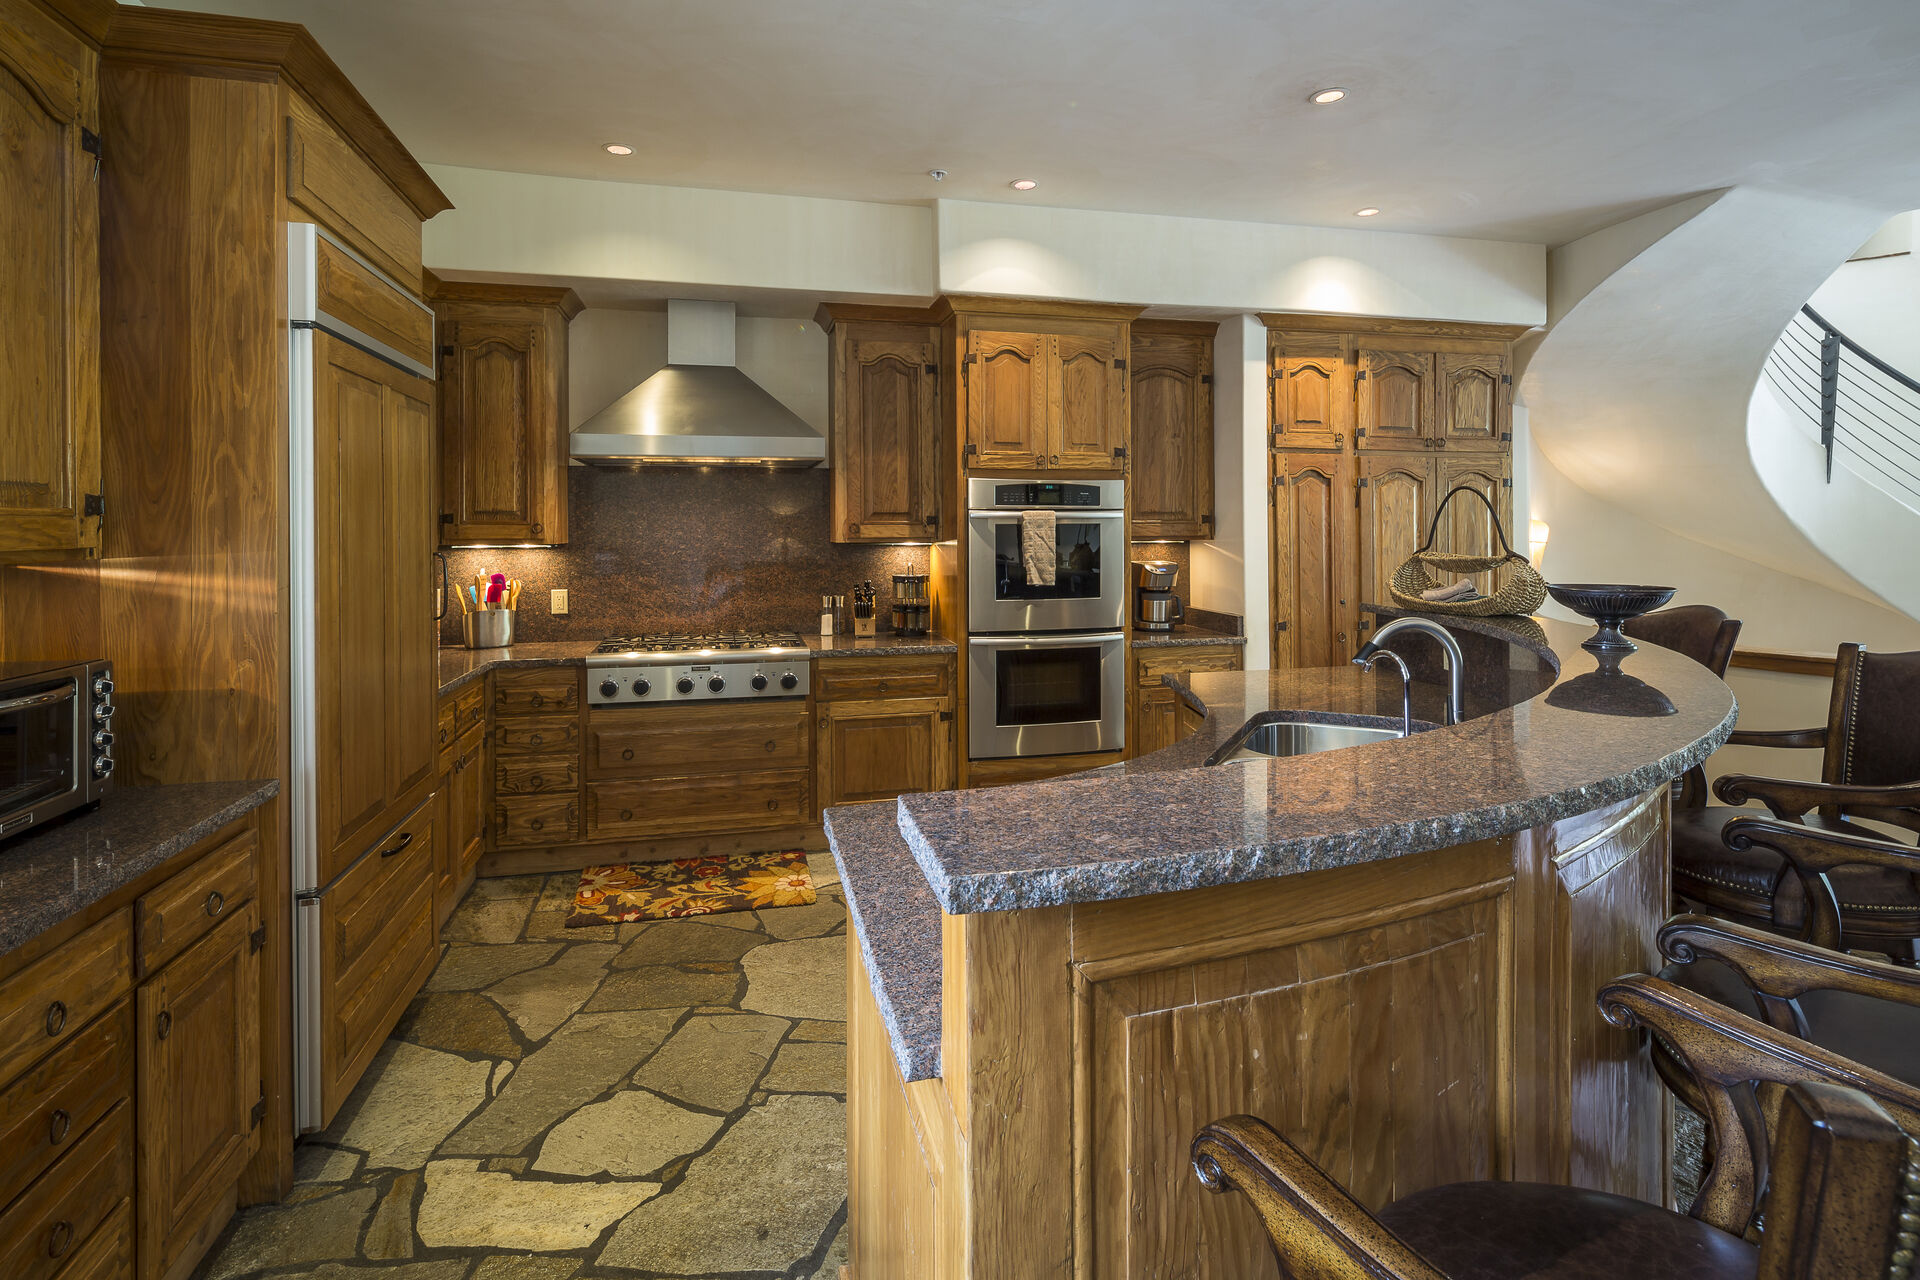 The fully equipped kitchen of this Colorado Mountain vacation rental, with bar seating and stainless steel appliances.